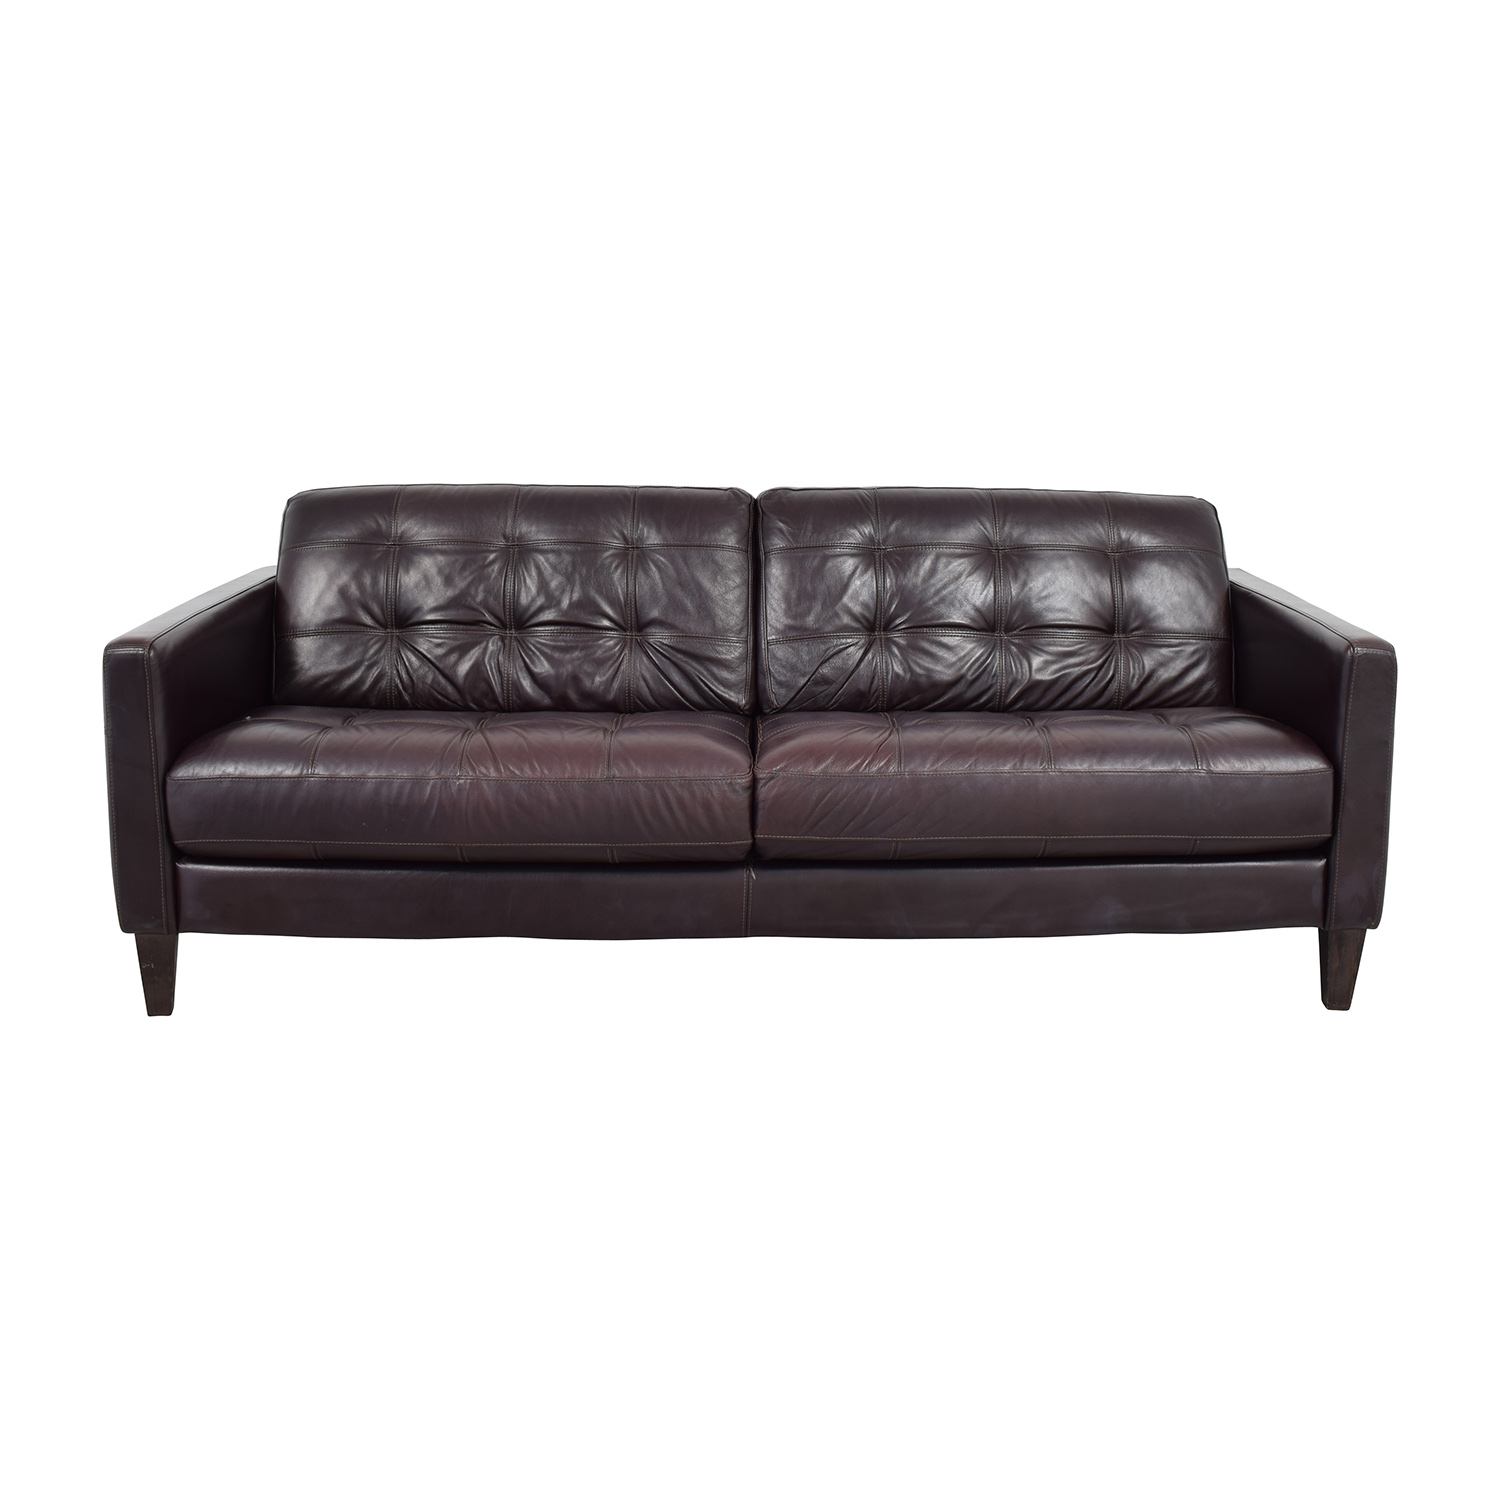 Shop Macys Milan Leather Sofa Macys ...